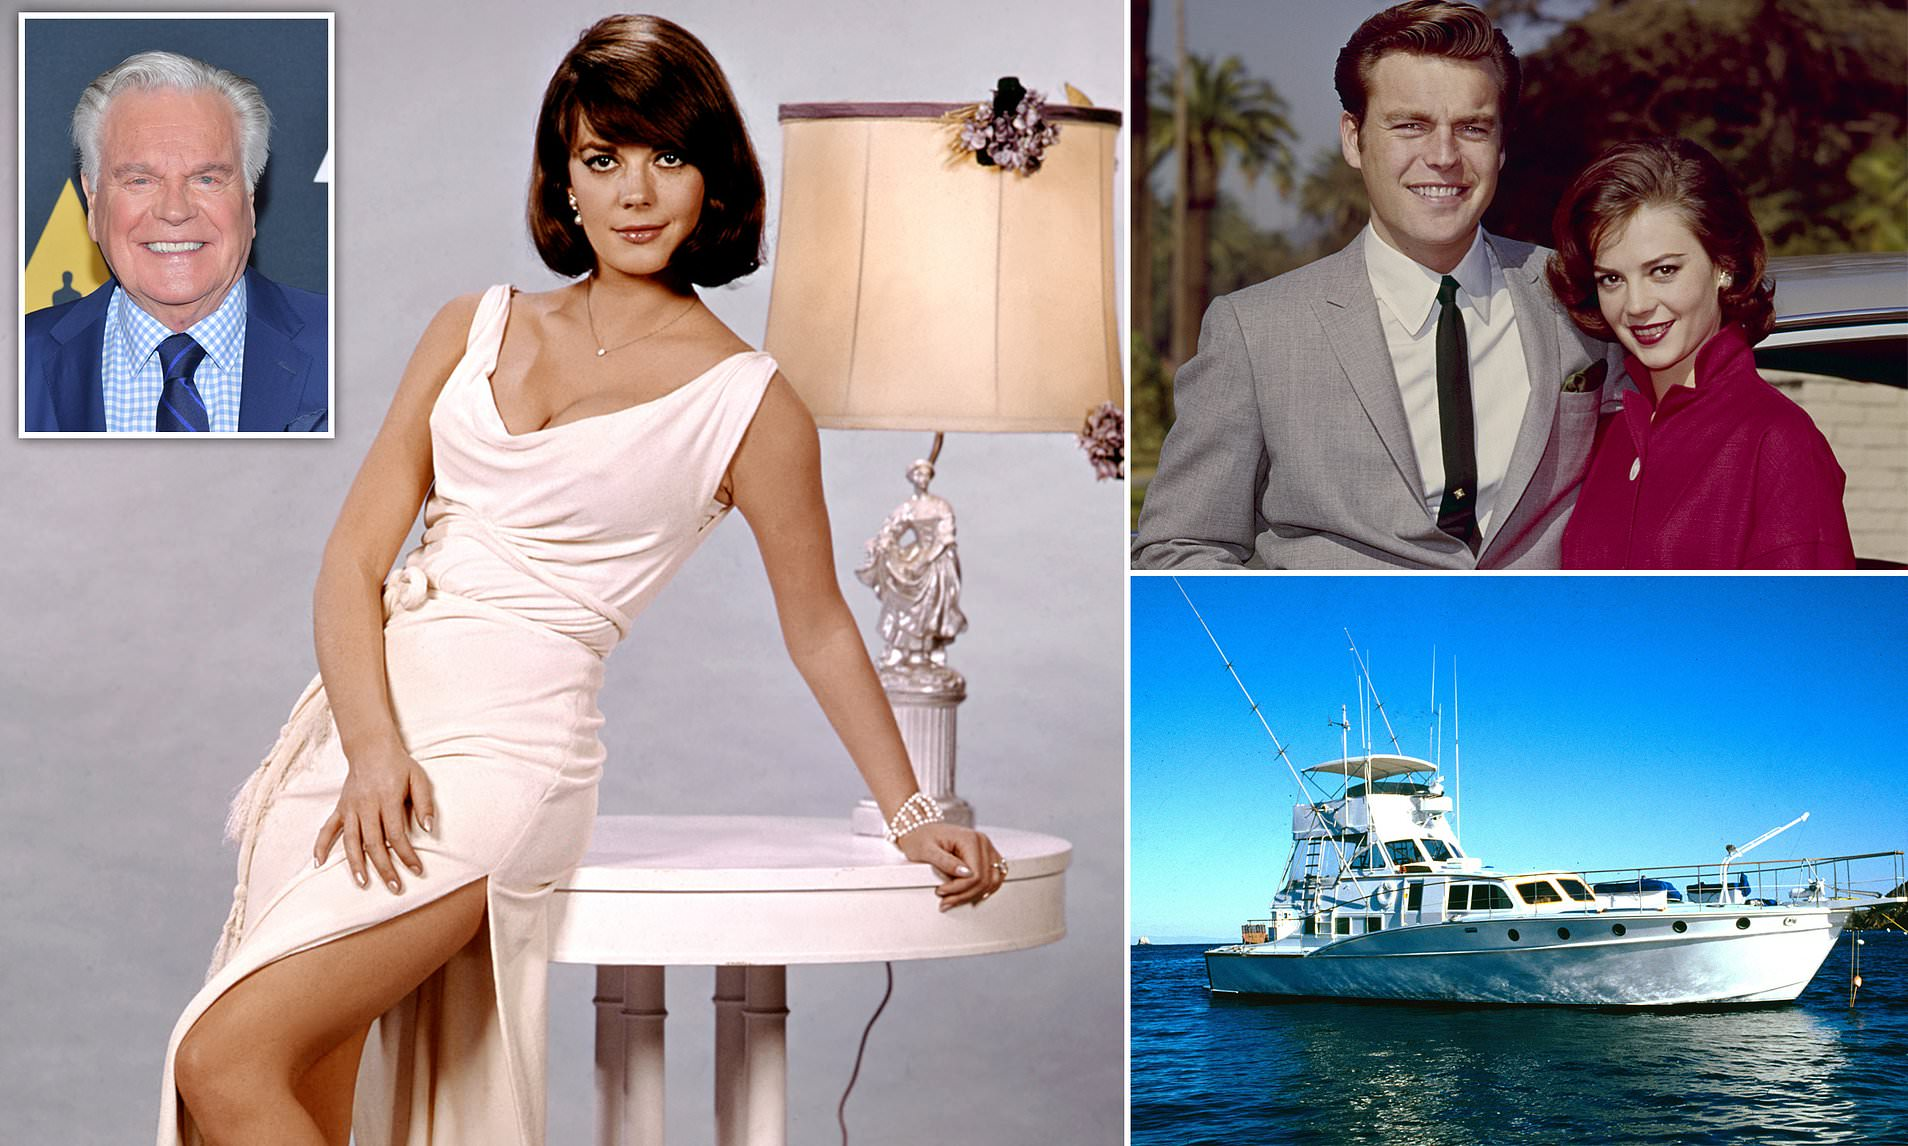 Natalie Wood's Death At Sea And A Sexual Betrayal Of Robert Wagner